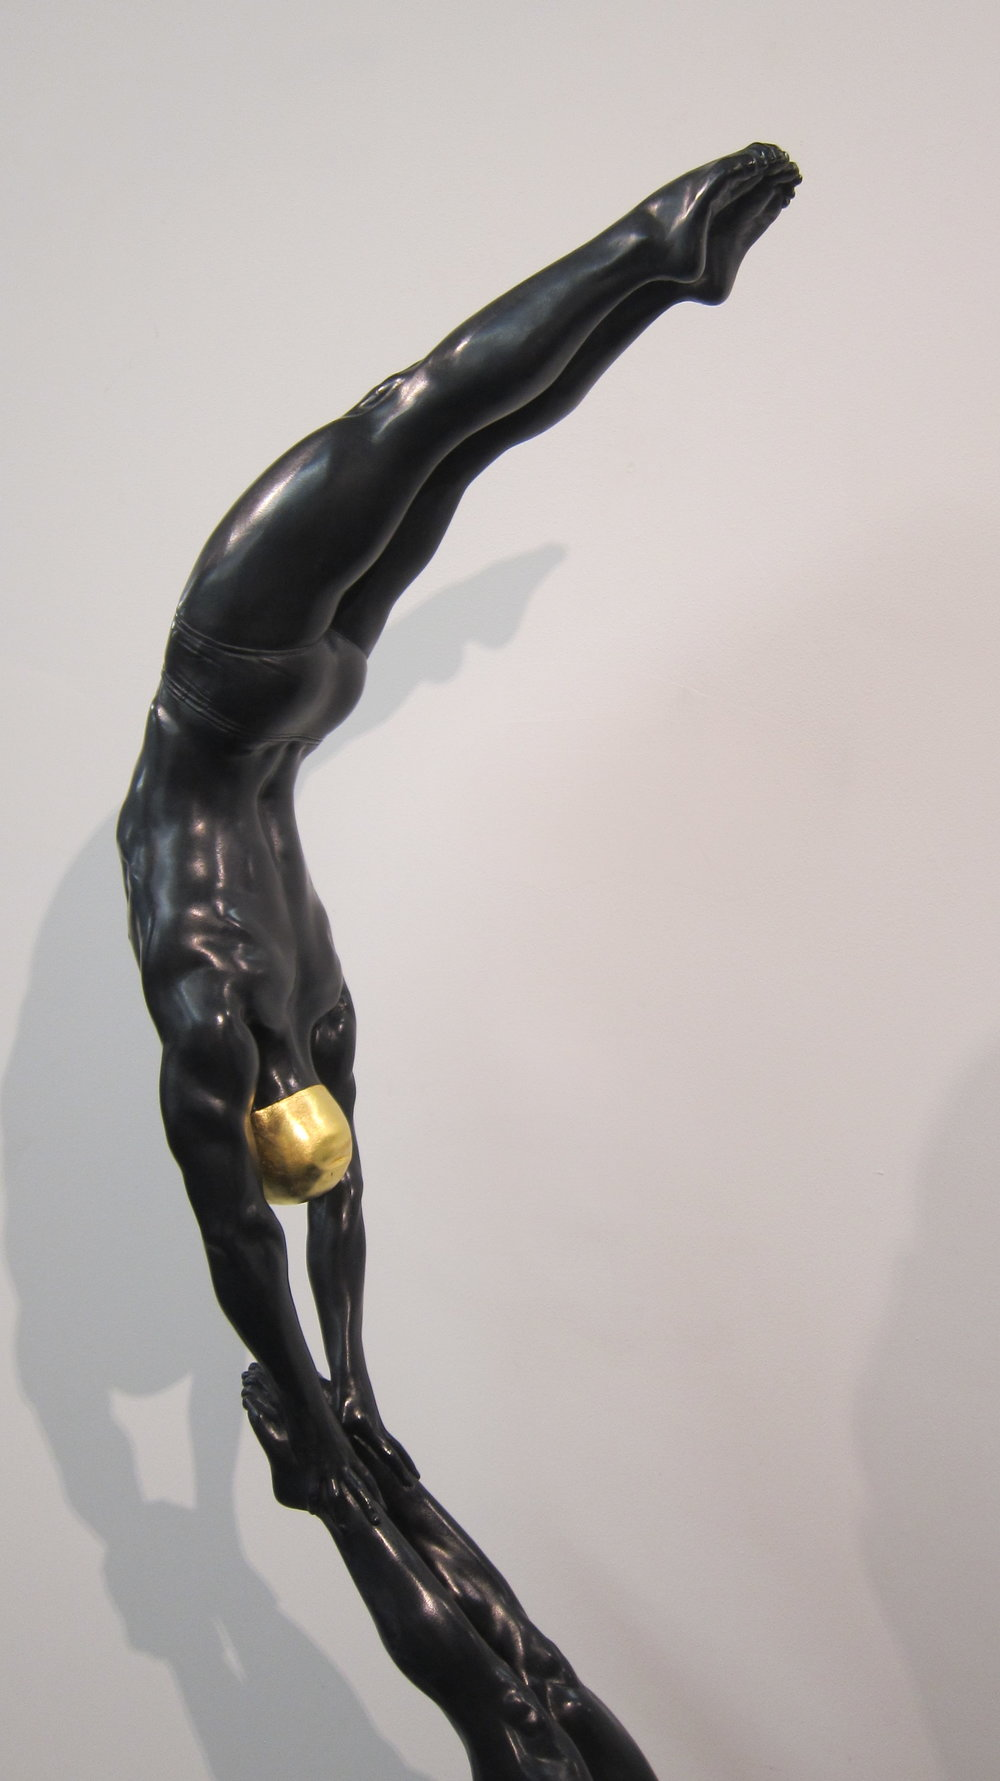 The Double Diver, 48 x 10 x 10, Black Patina With Gold Leaf Cap, 2015, New York Studio